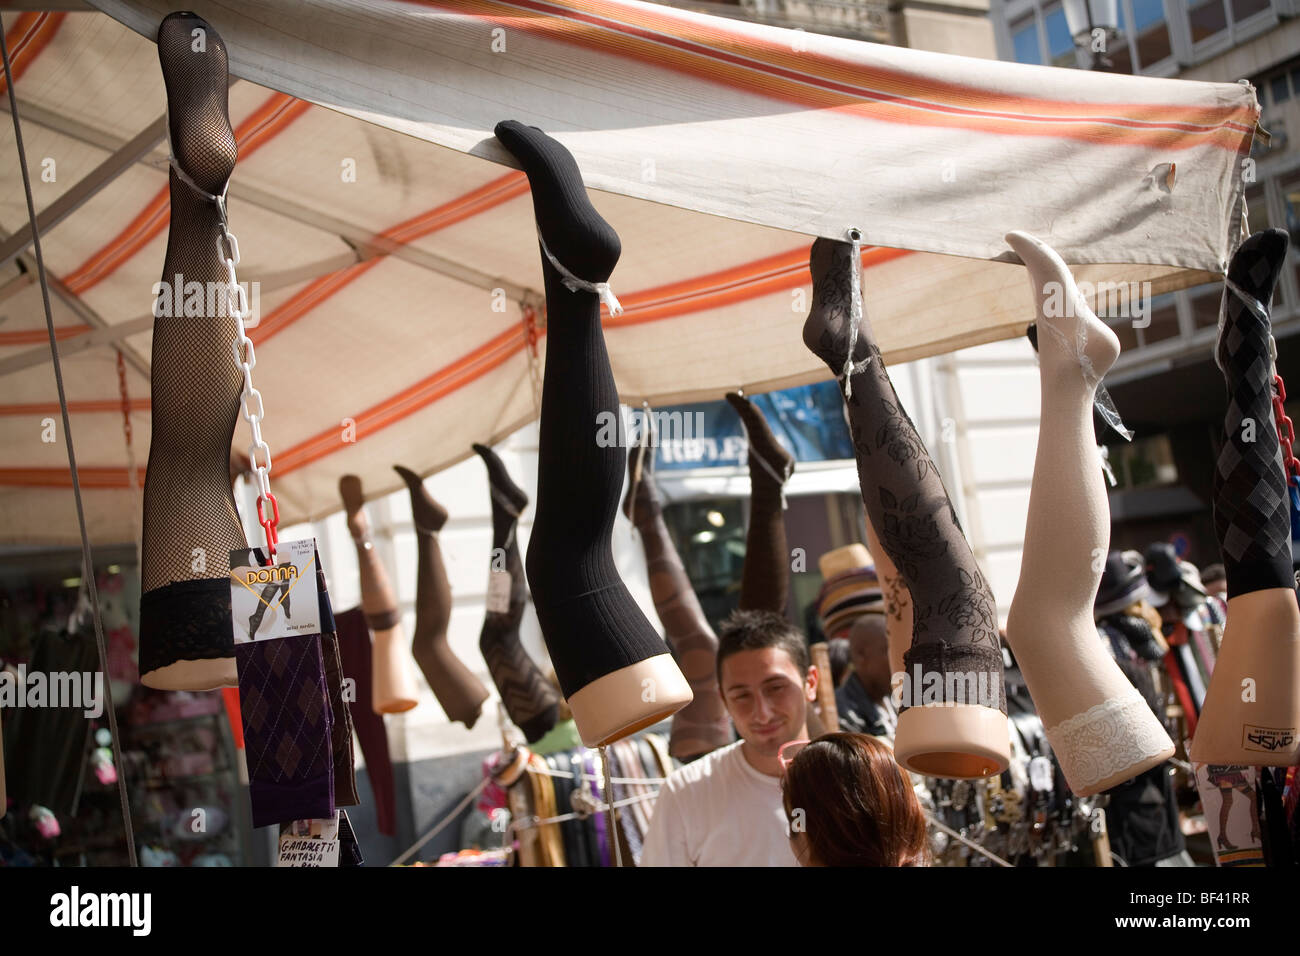 Women stockings on dummy legs for sale in the market - Stock Image